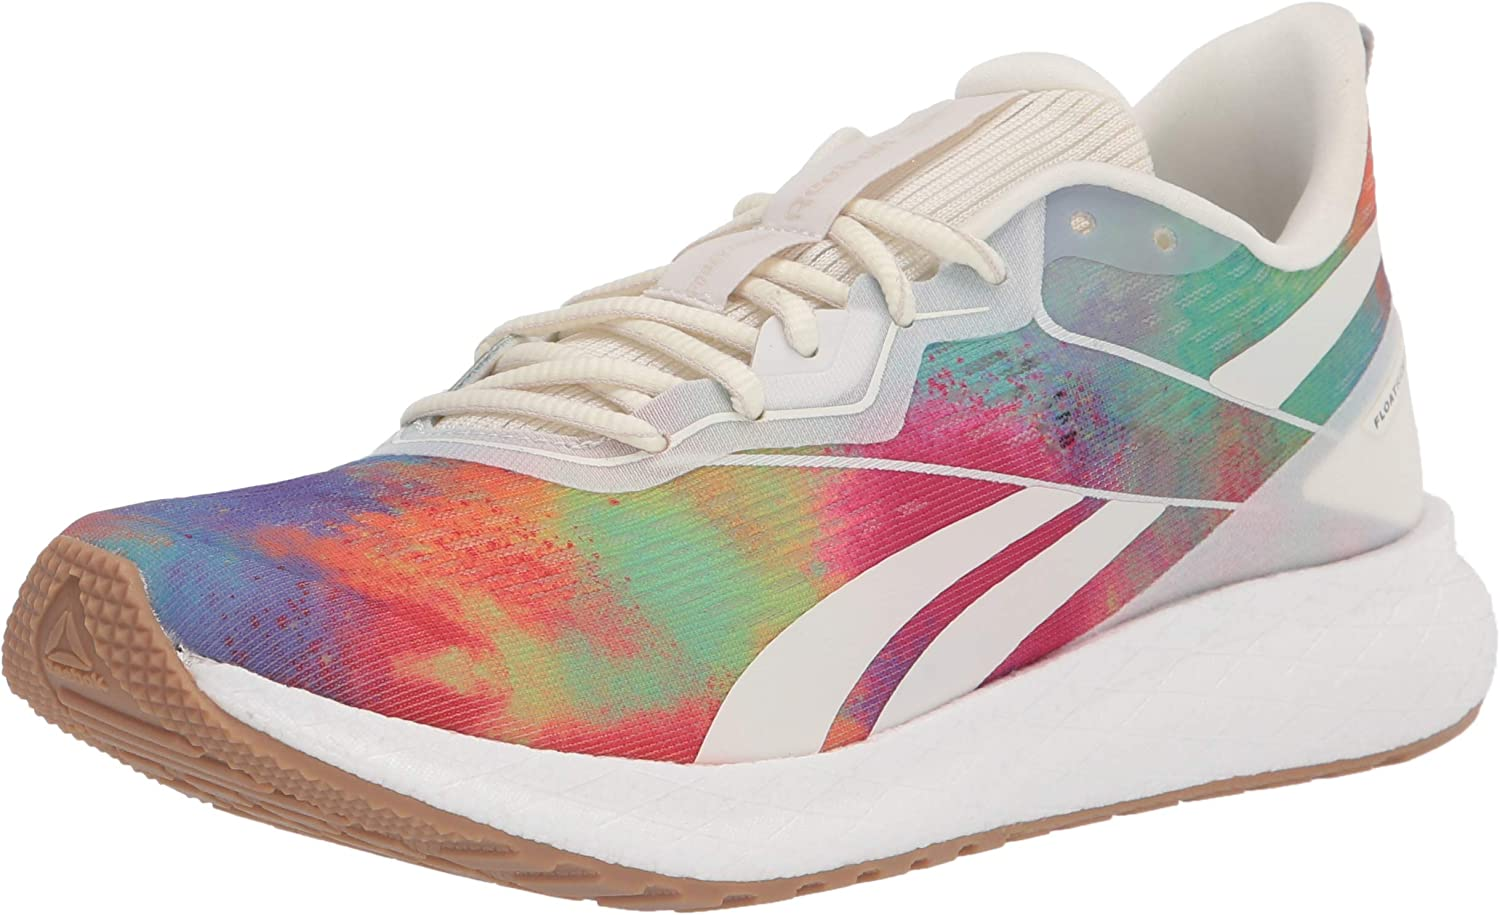 Reebok Women's Forever Free shipping Floatride 2 Cross Energy Trainer Recommendation